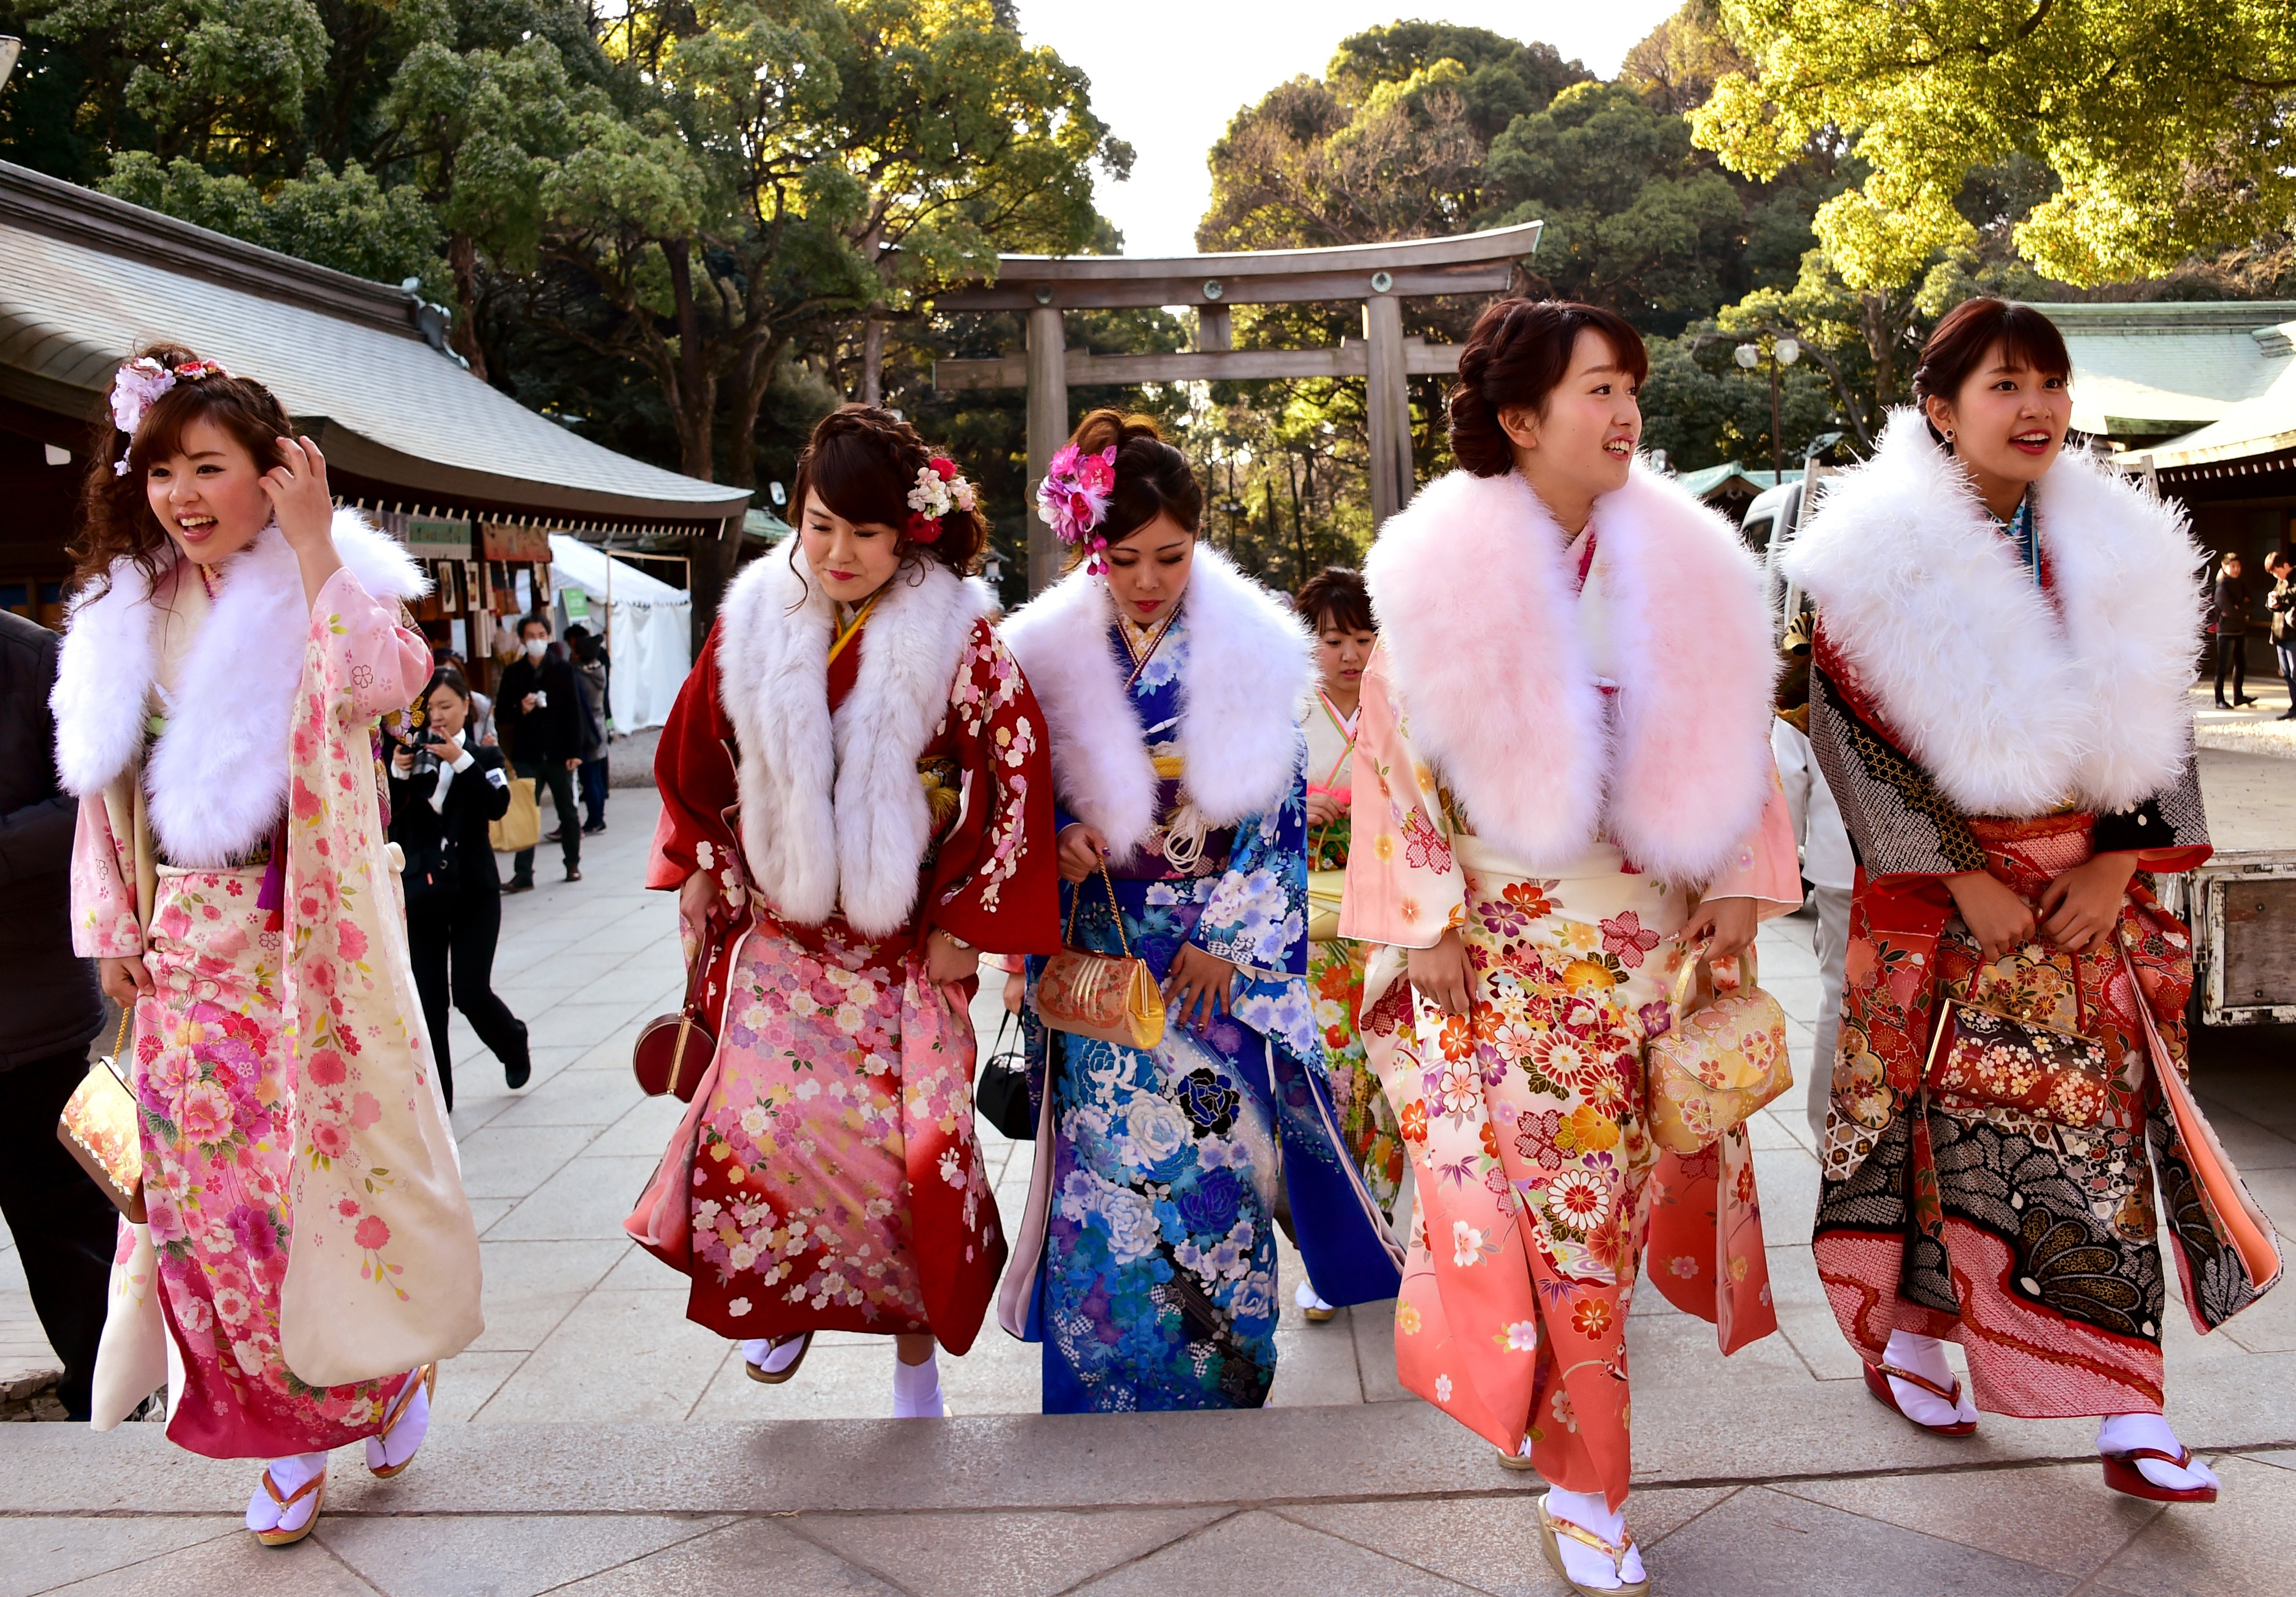 Japan Coming Of Age Day 2016  Facts About Japanese Holiday Celebrating Young People  Photos